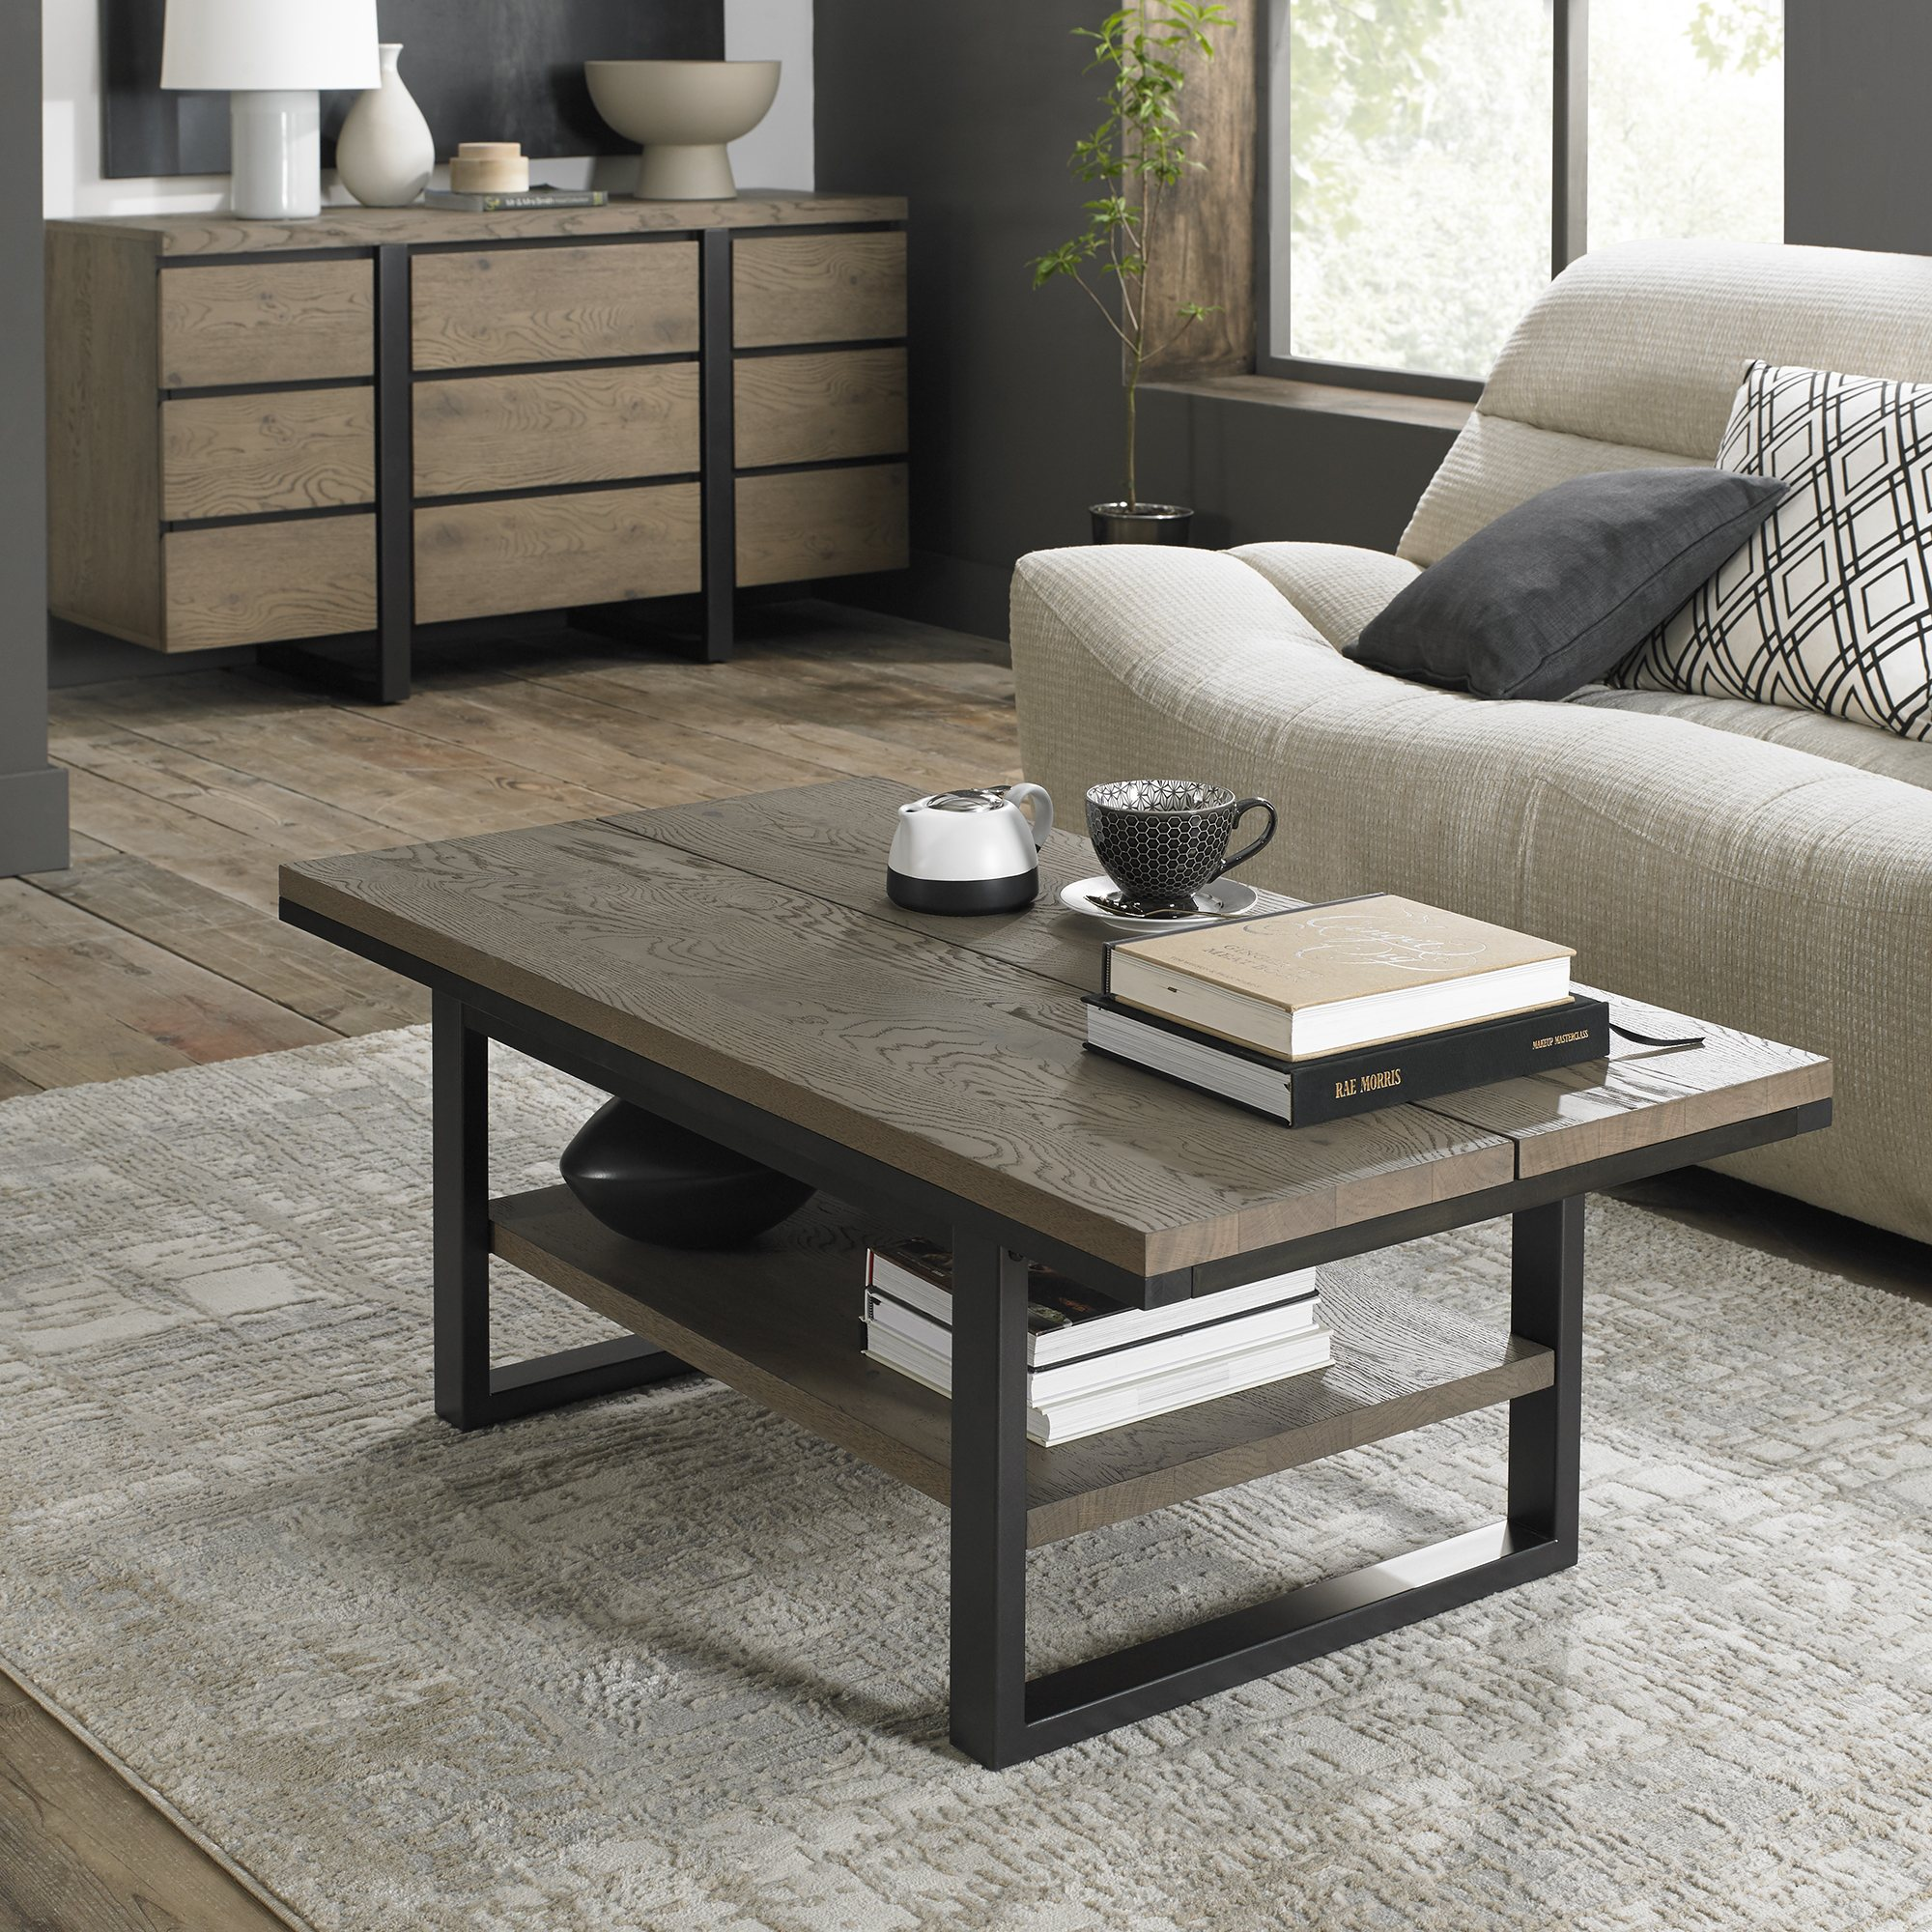 BRINDISI COFFEE TABLE